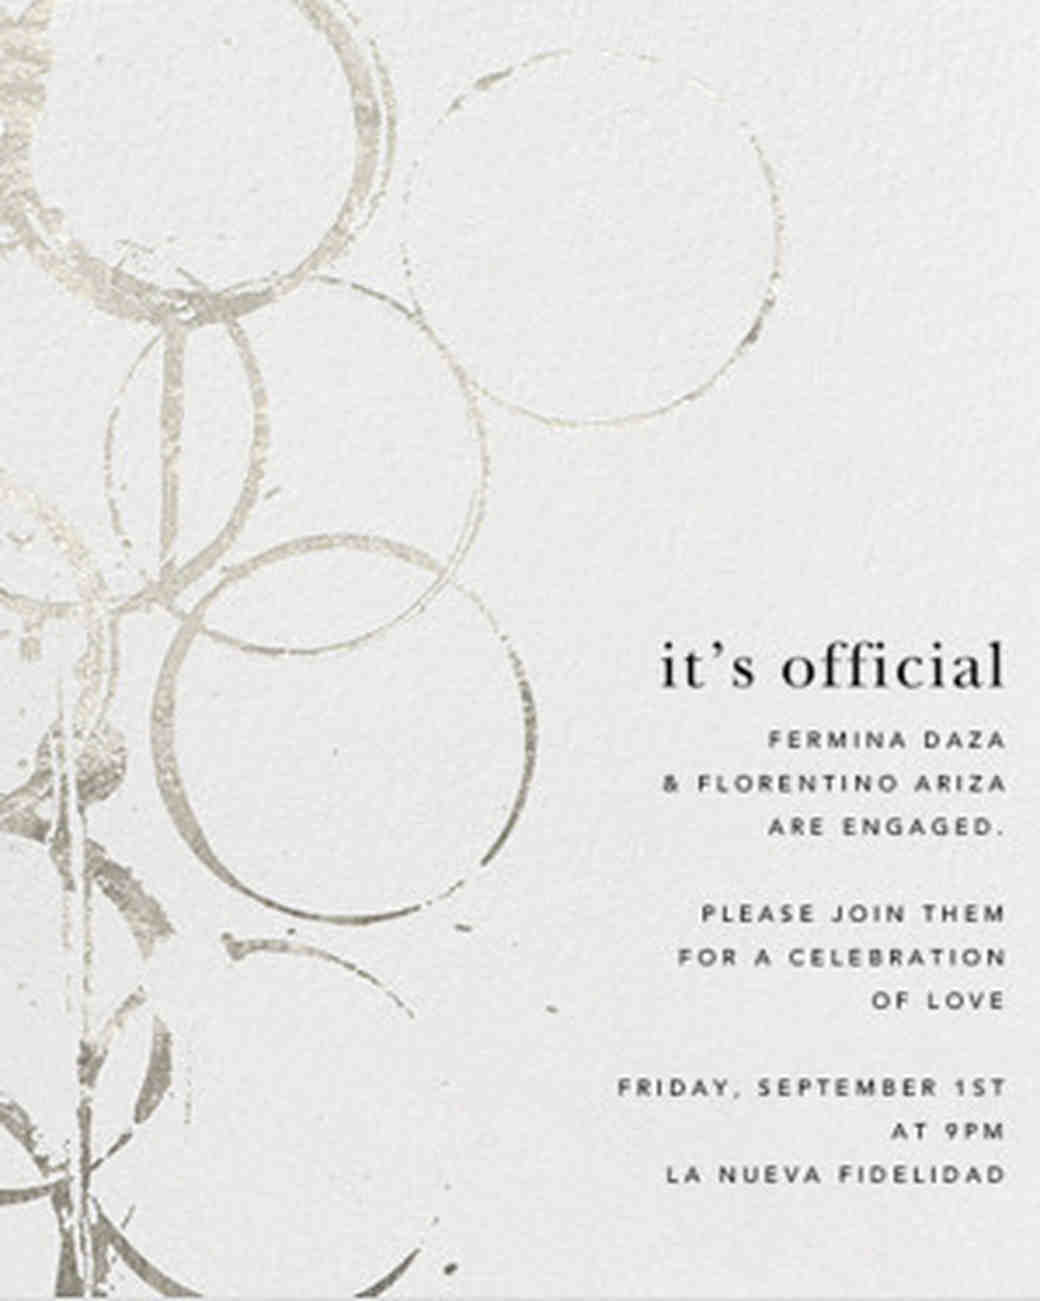 paperless-engagement-party-invitations-paperless-post-bottle-prints-0416.jpg